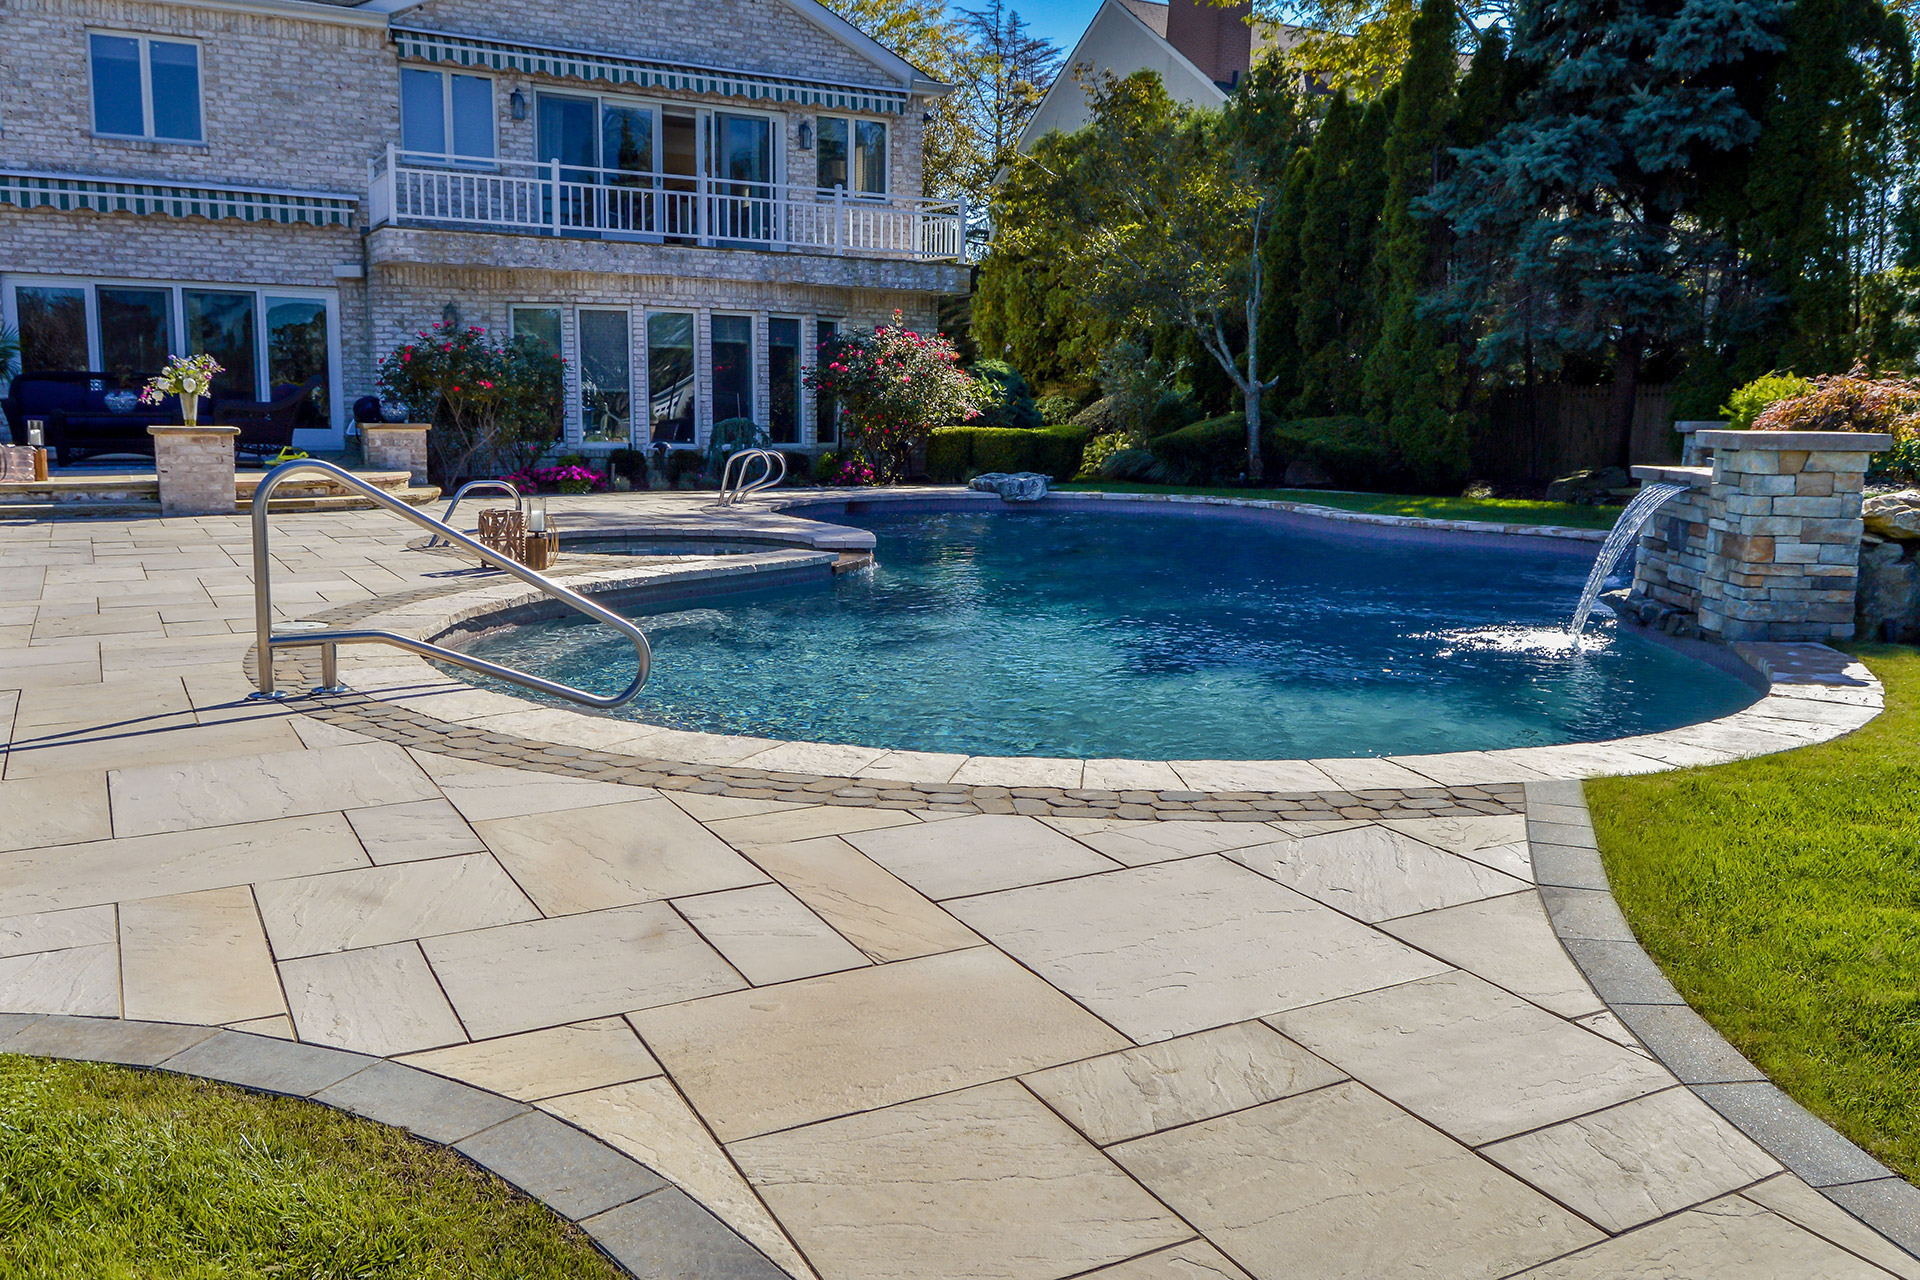 Hauppauge, NY top backyard designs with swimming pool and outdoor kitchen